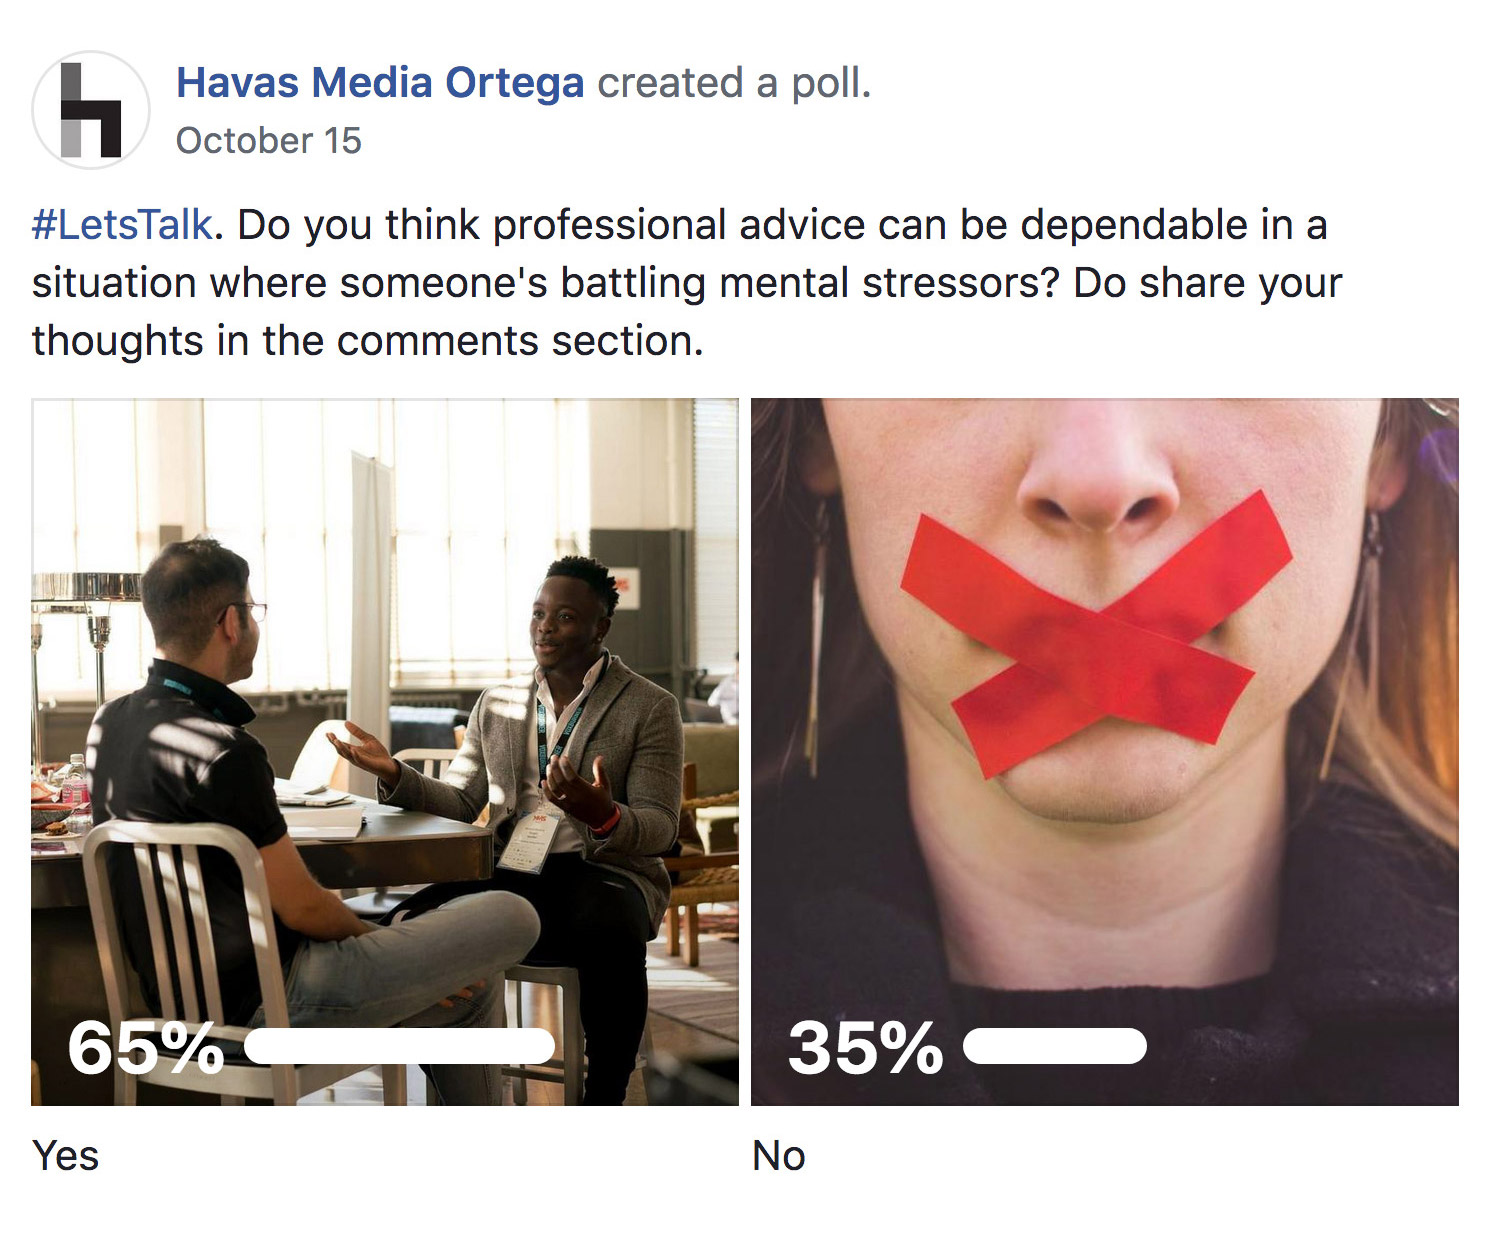 A screenshot of a Facebook poll asking: Do you think professional advice can be dependable in a situation where someone's battling mental stressors? 65% say Yes, while 35% say No.